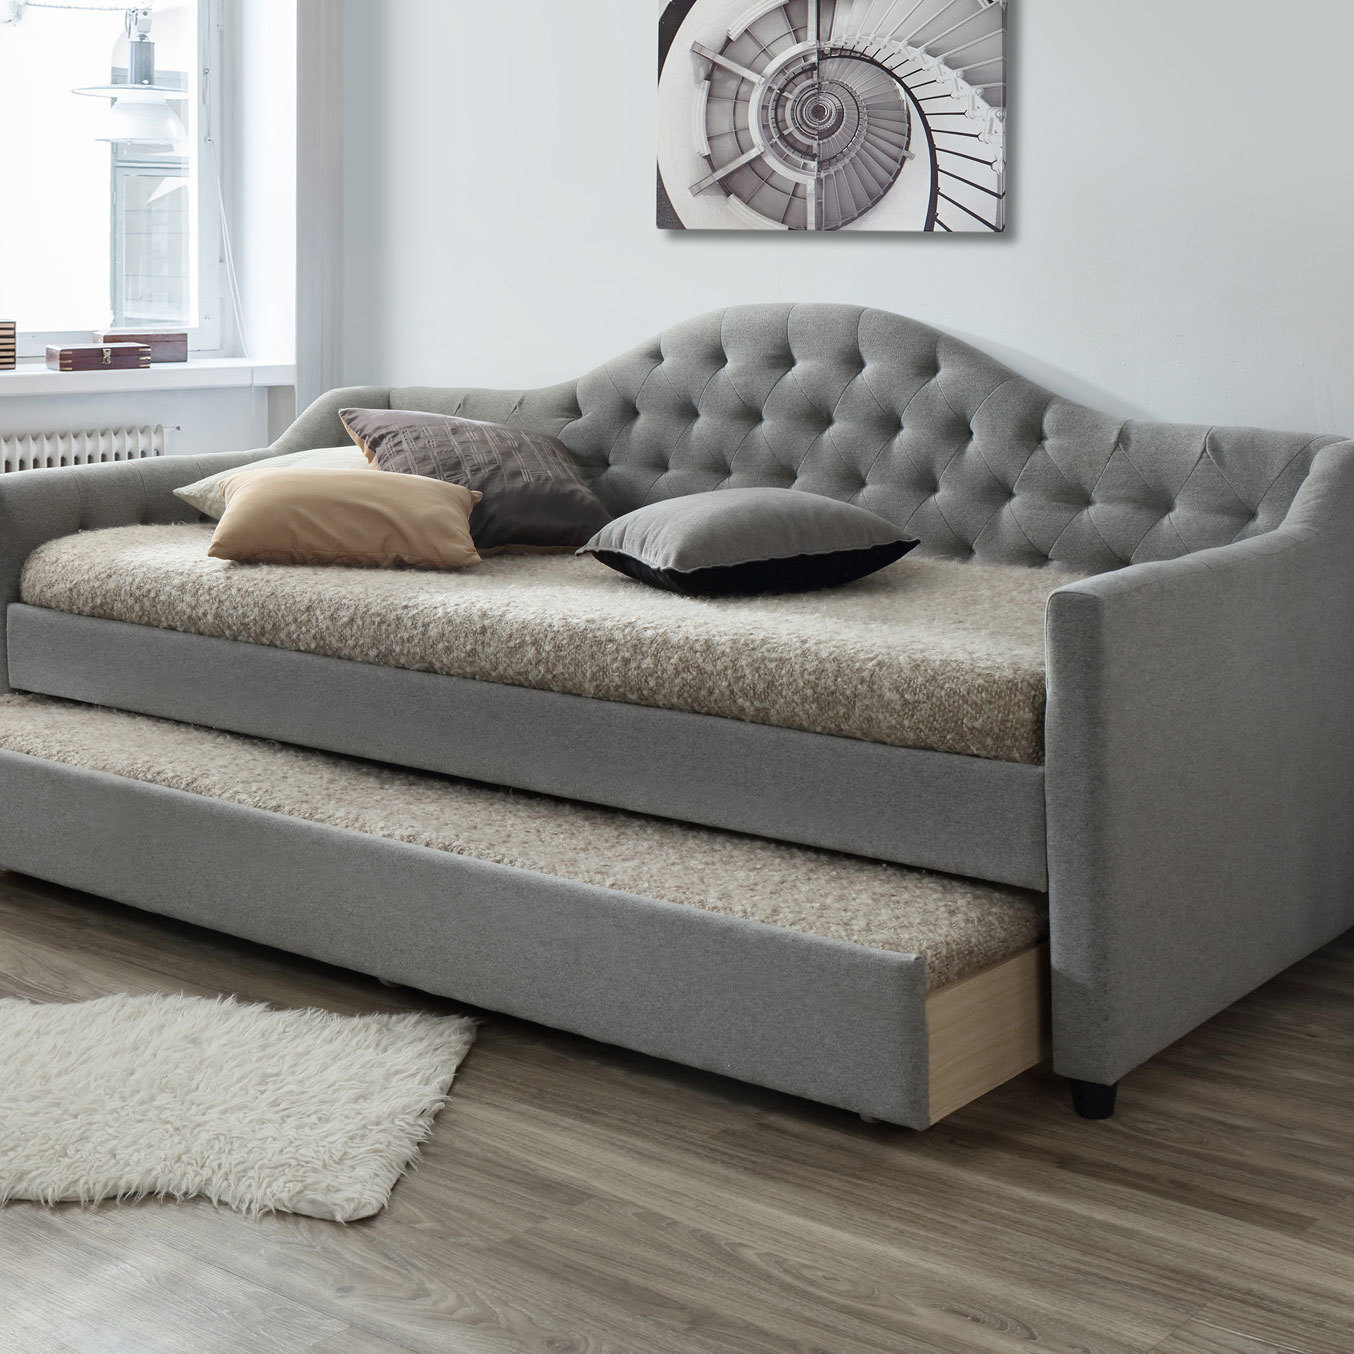 New grey york single day bed frame with trundle vic for York sofa bed